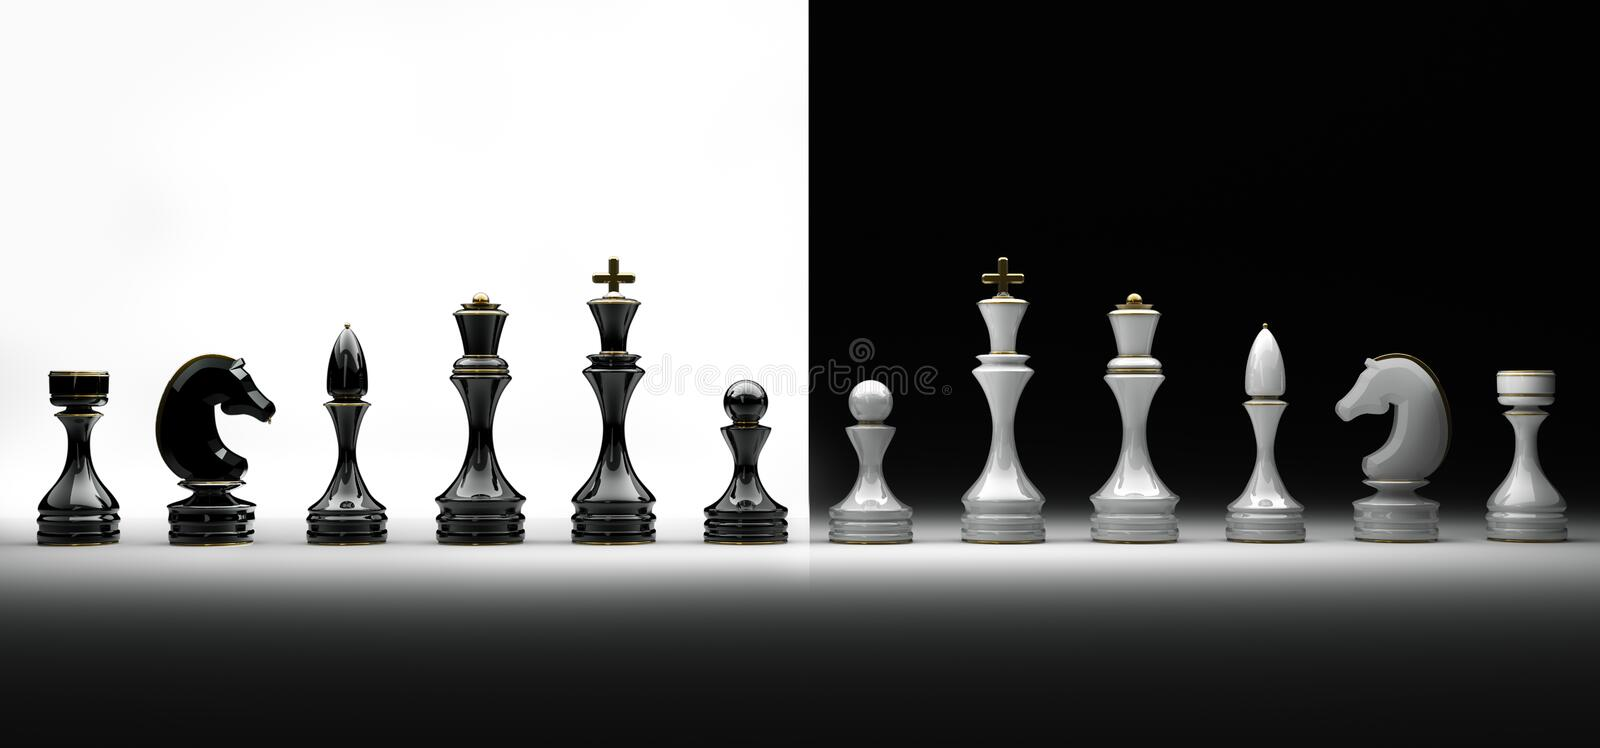 Complete set of chess royalty free stock photo